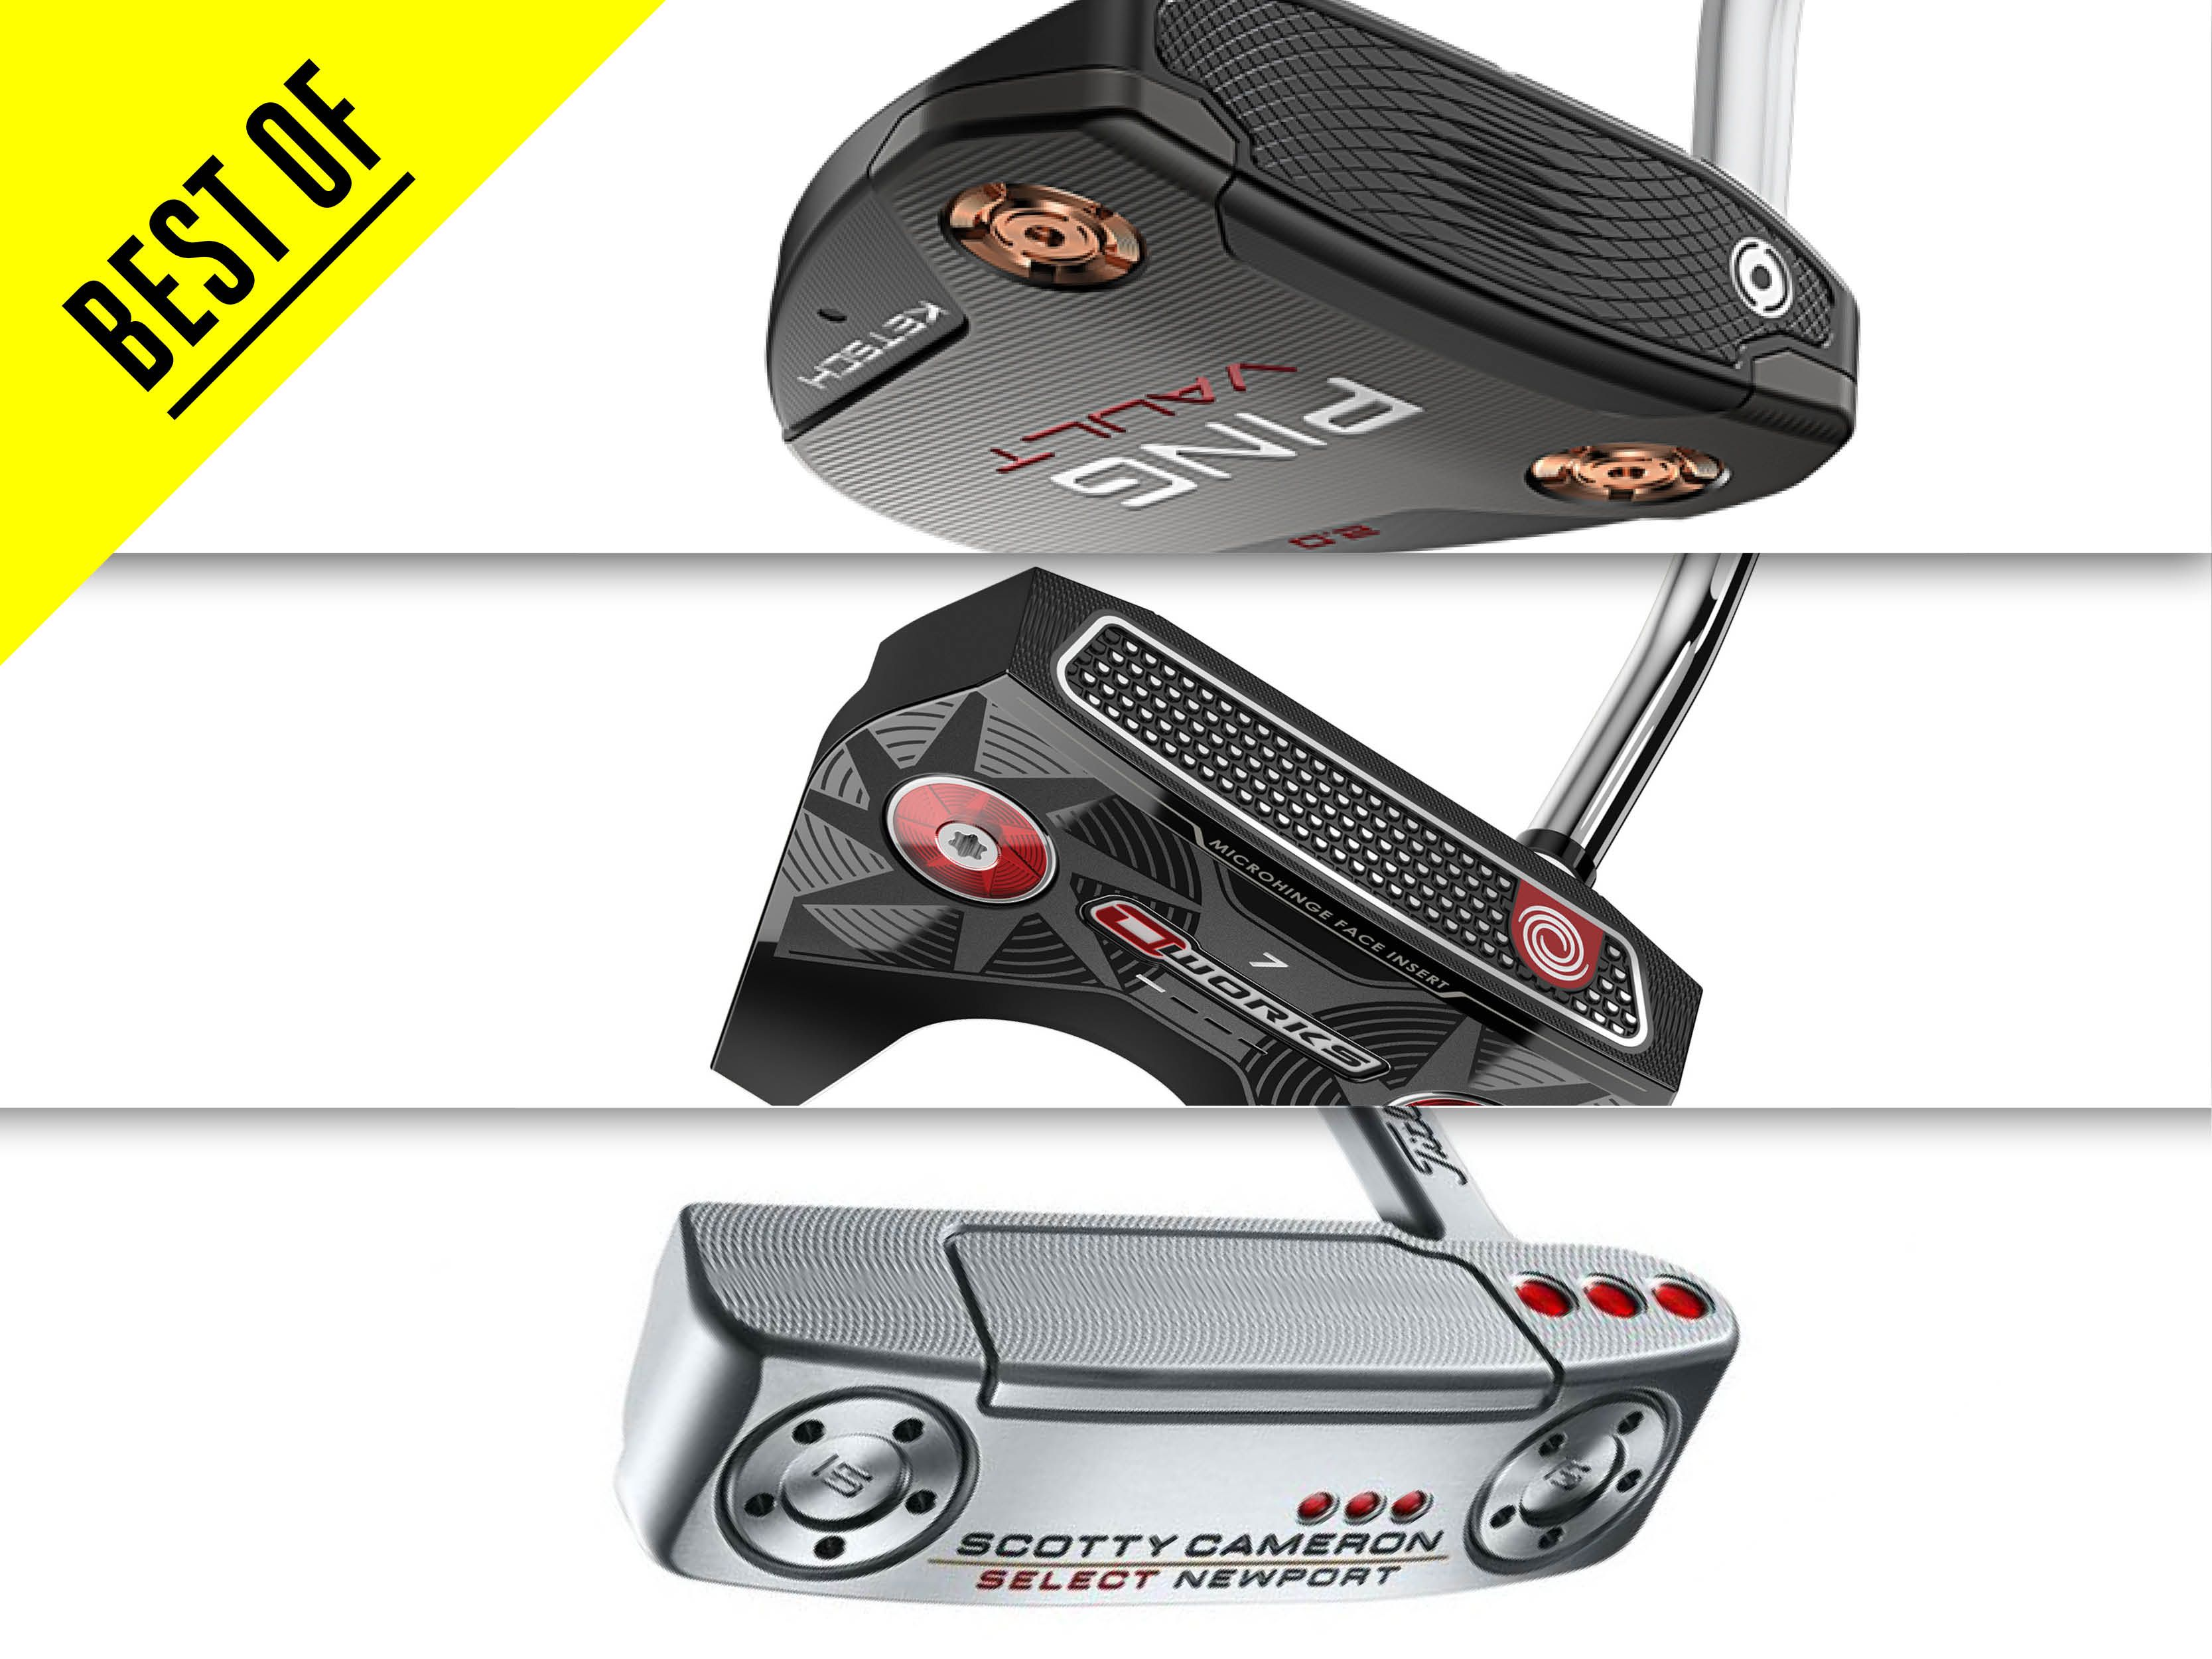 Best putters take a look at our favourites flatsticks